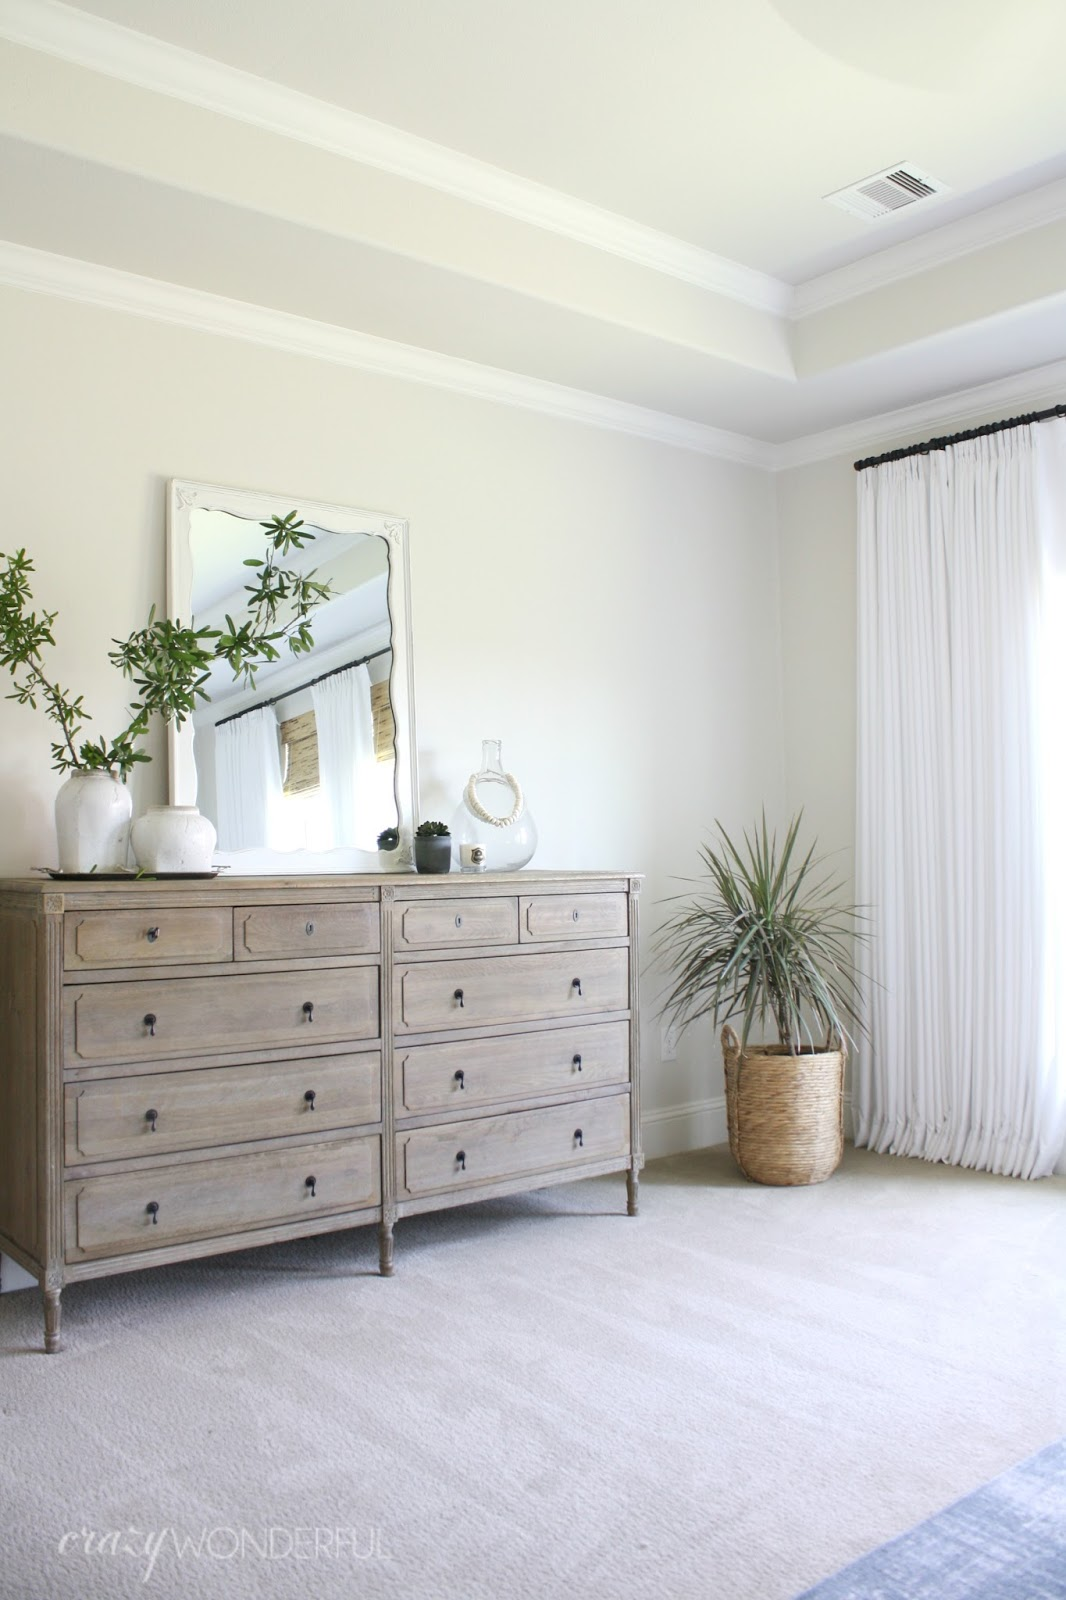 a choice dressers s and budget decorating great this to feel pretty it modern has palette if you for walnut dresser hgtv with under bedroom want color or design white beautiful blog scandanavian match bolder